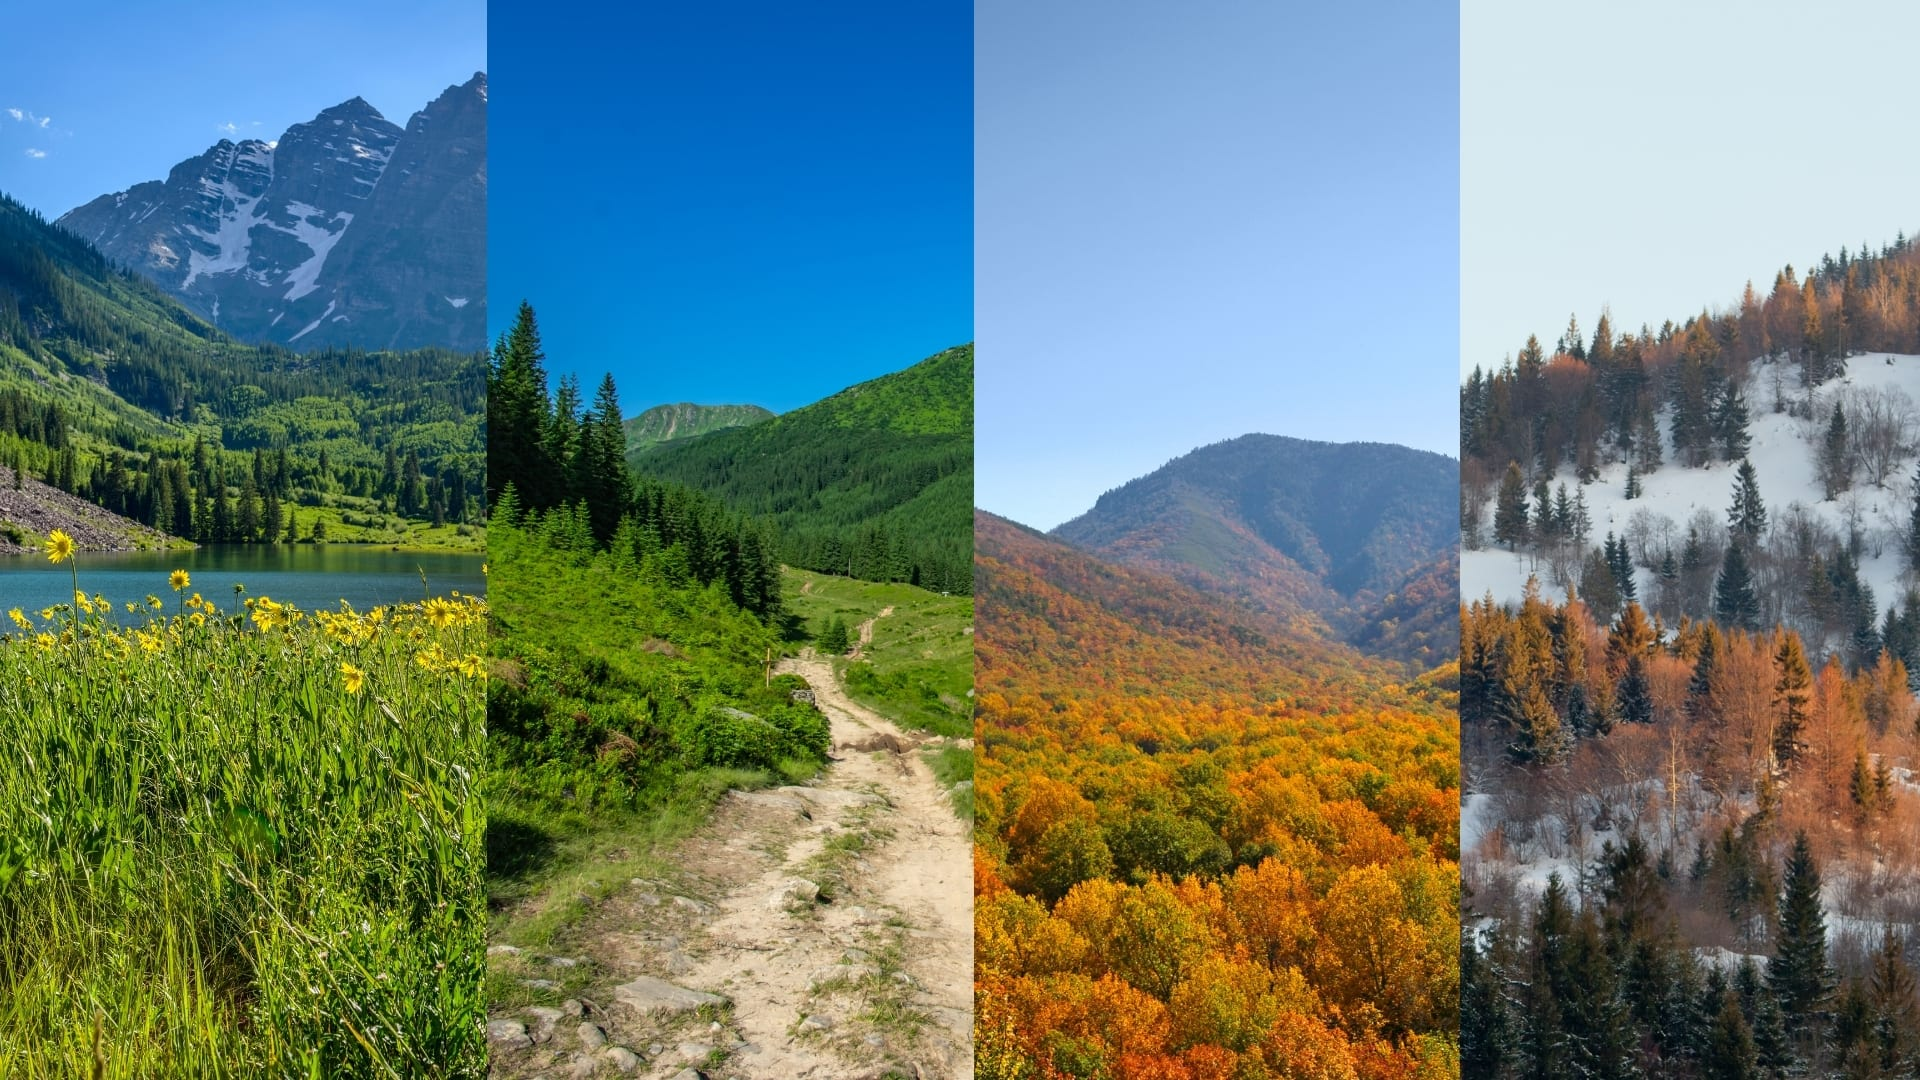 Four seasons, spring, summer, fall, and winter next to each other